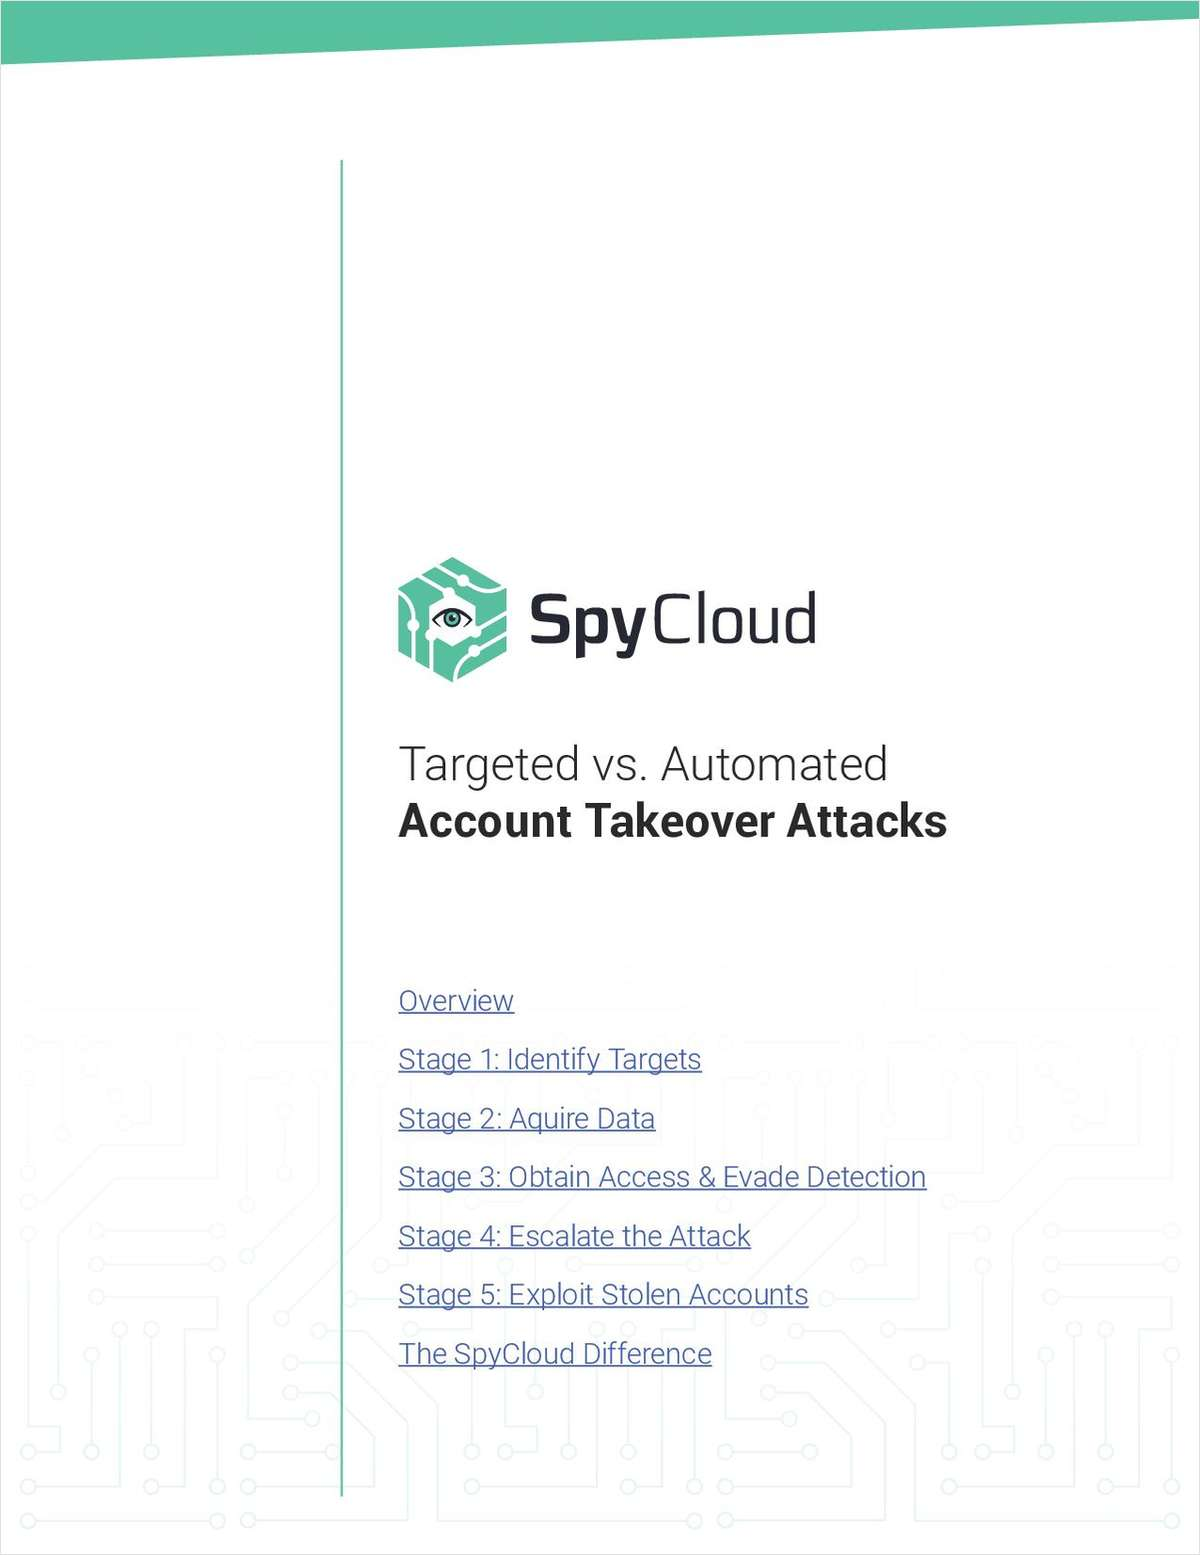 Targeted vs. Automated Account Takeover Attacks: What's the Difference?